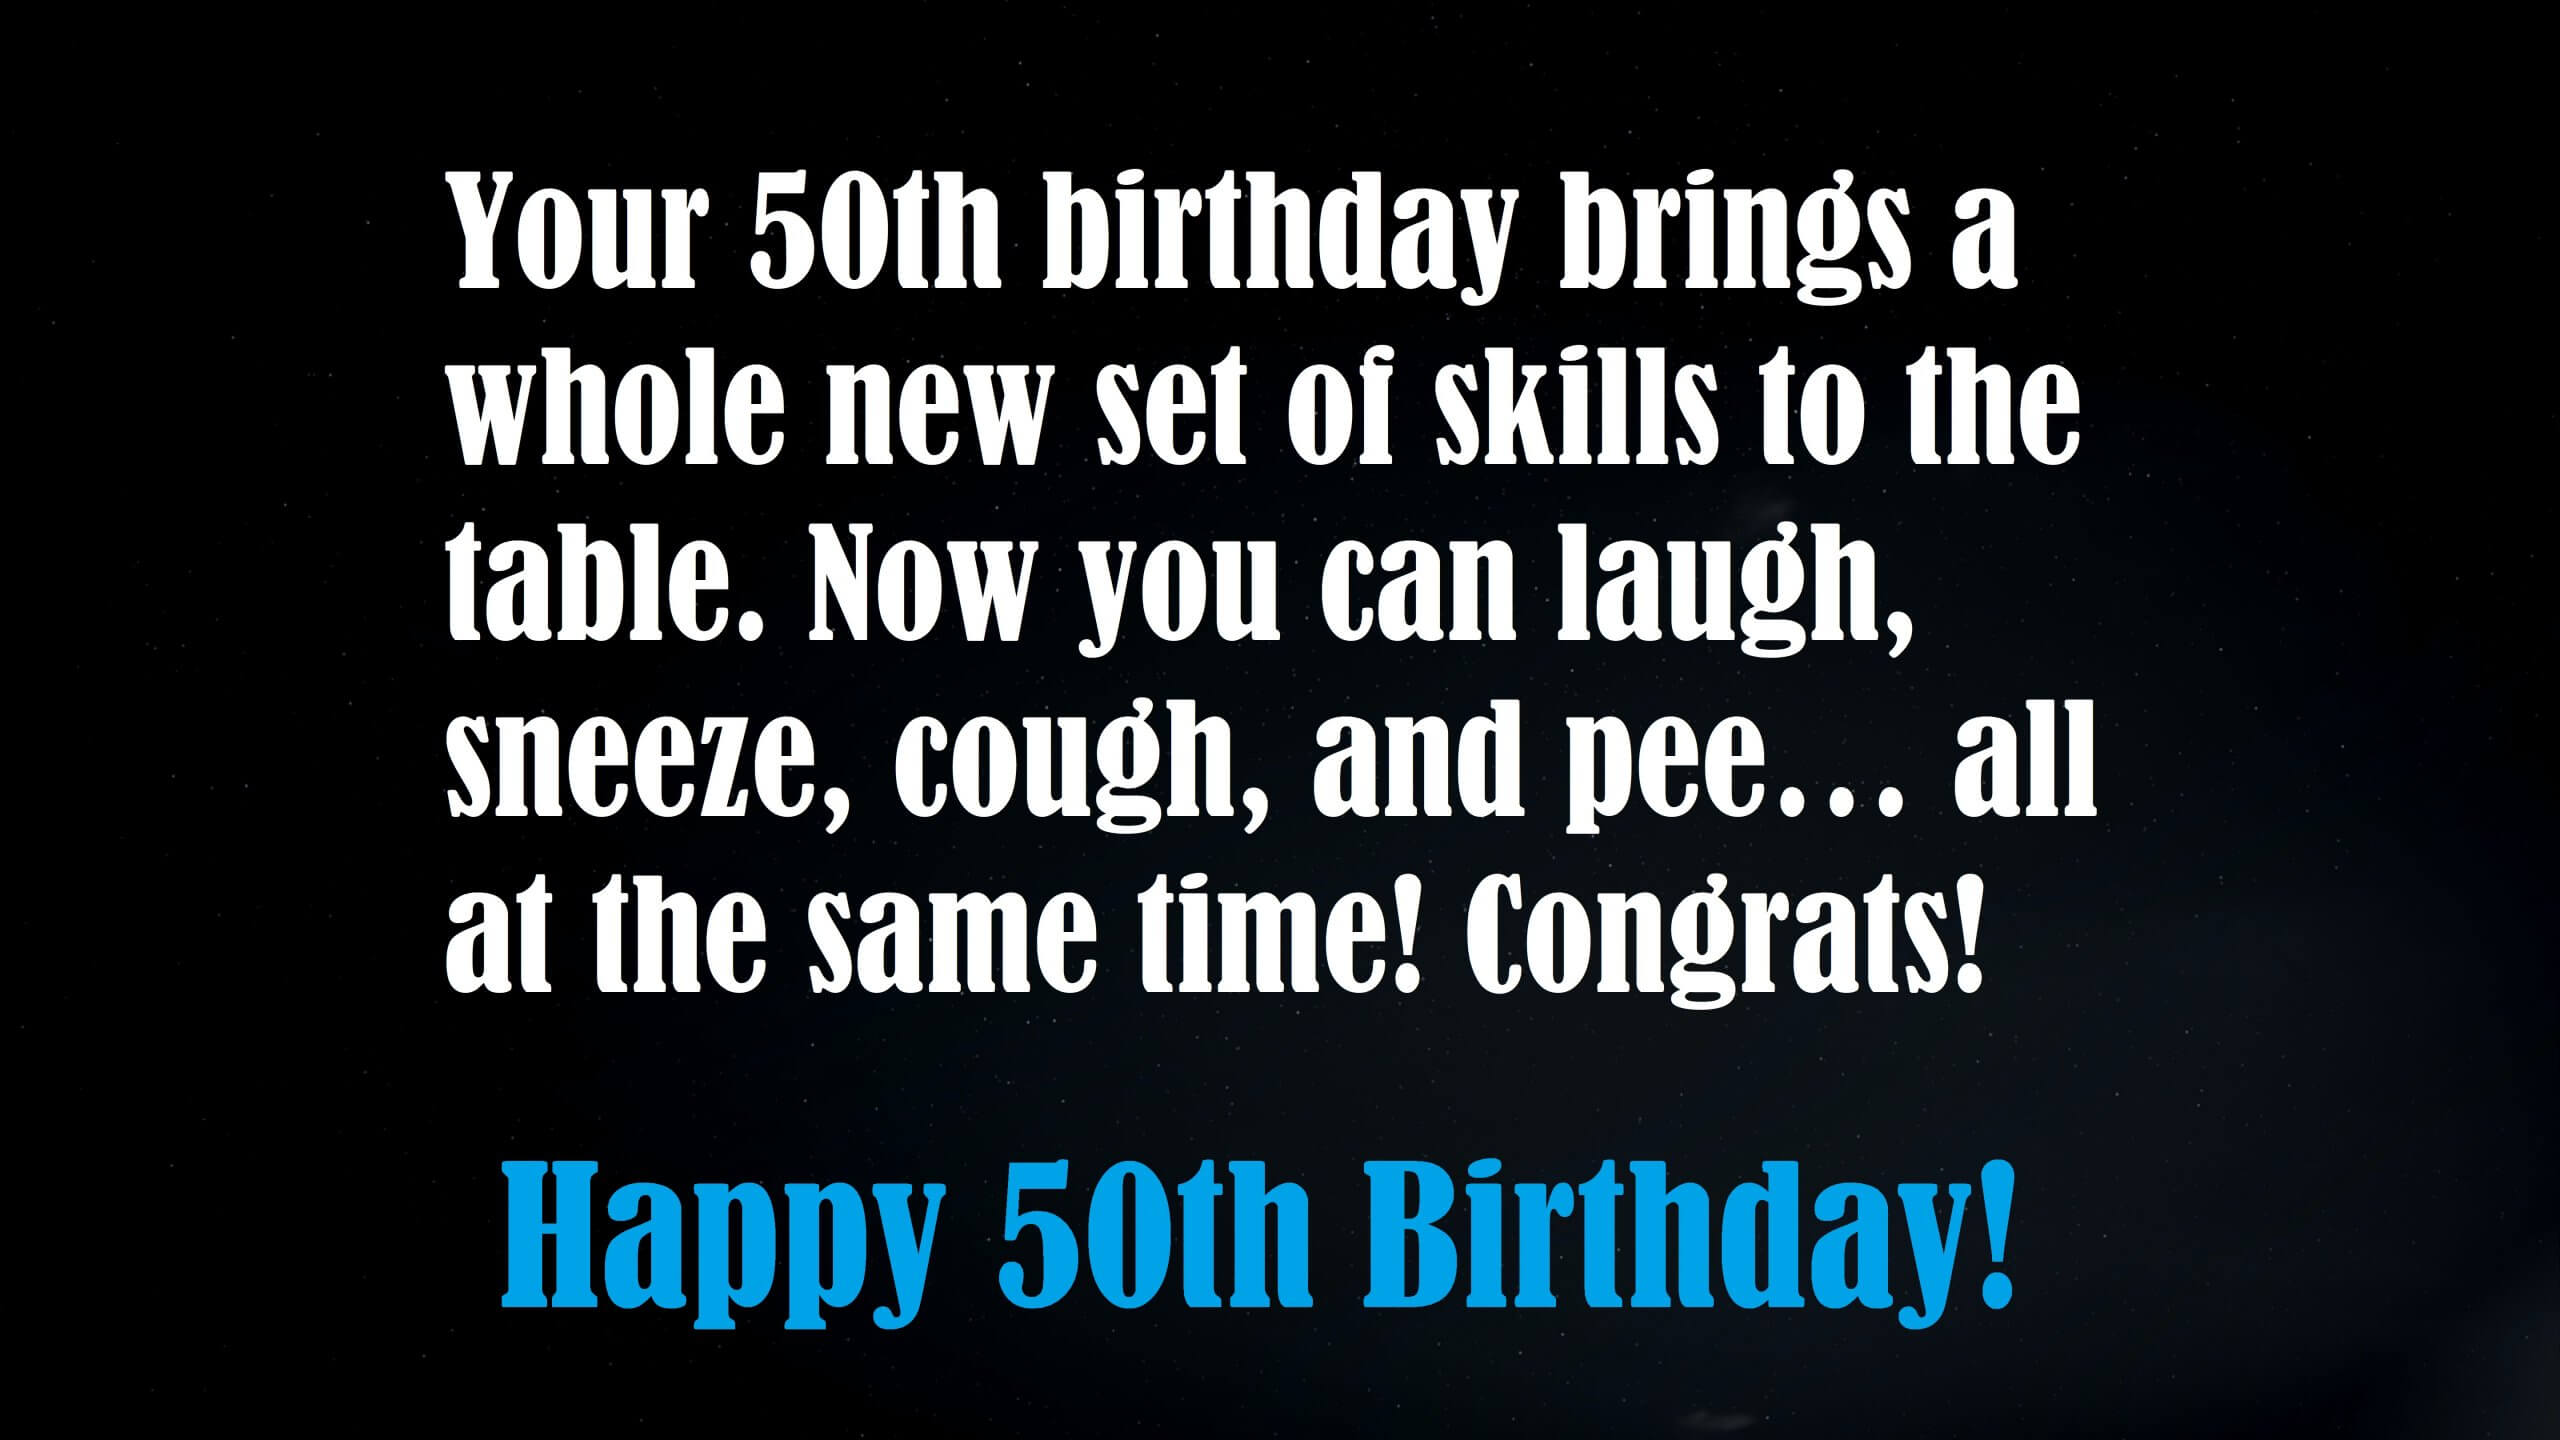 Funny 50th Birthday Wishes 52 Humor Messages Quotes Sayings On Birthday